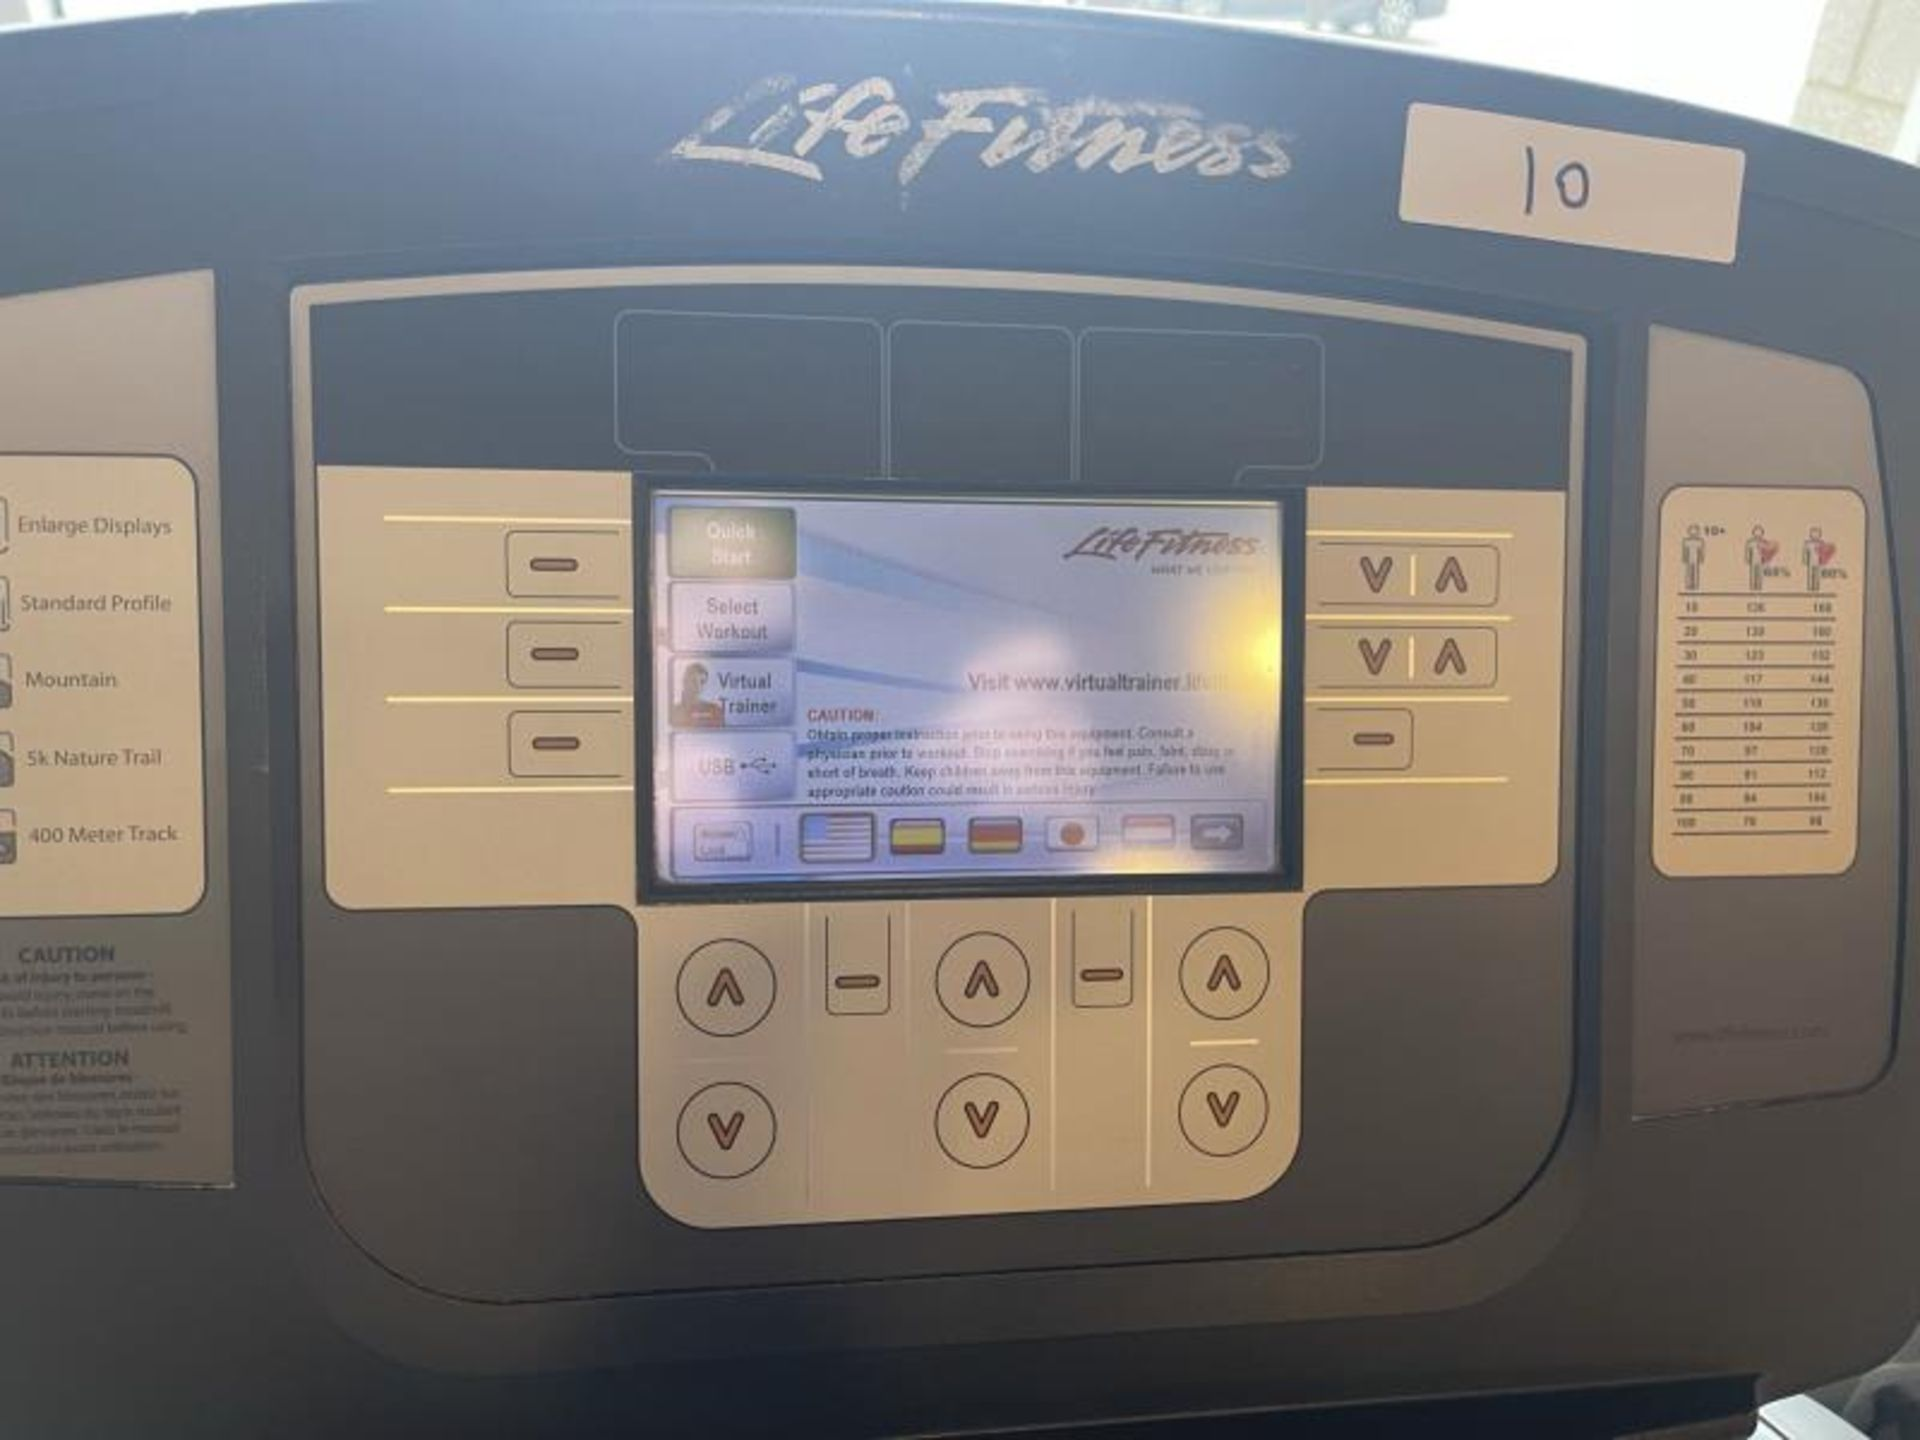 Life Fitness Treadmill M: 95T with Flex Deck, Shock Absorption System SN: TET106286 - Image 2 of 2